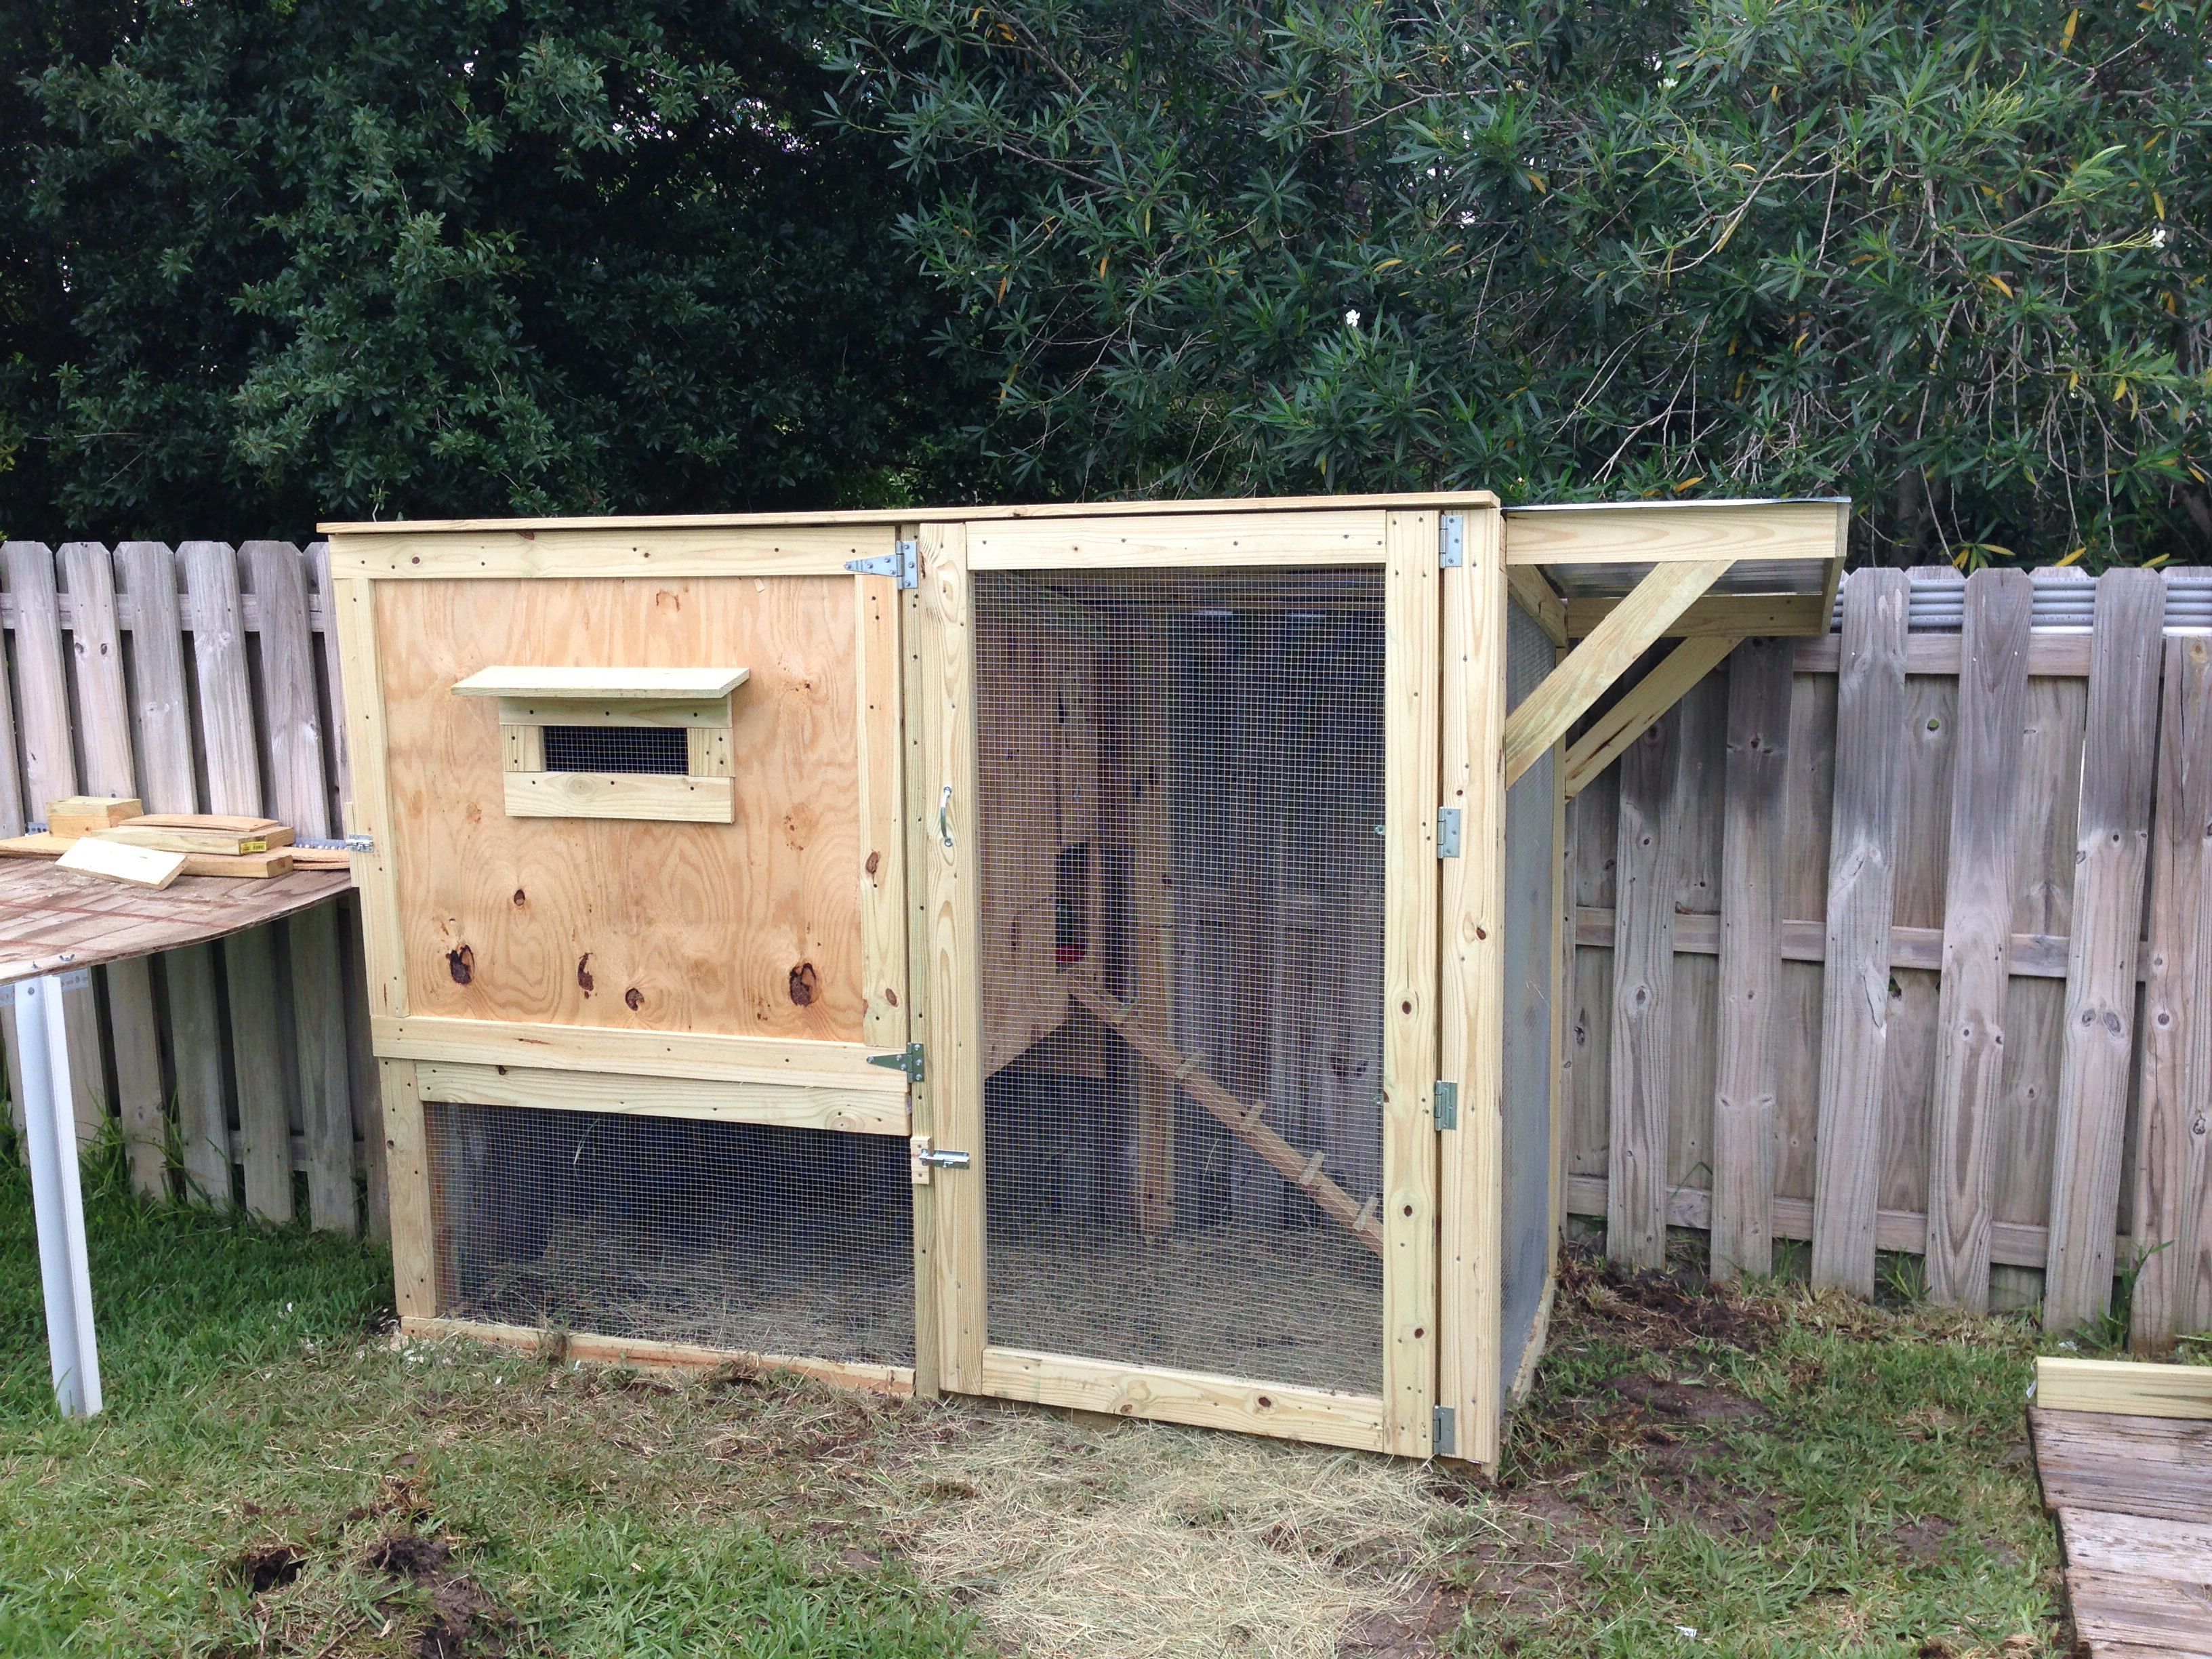 diy backyard chicken coop cost 325 including feeders will keep